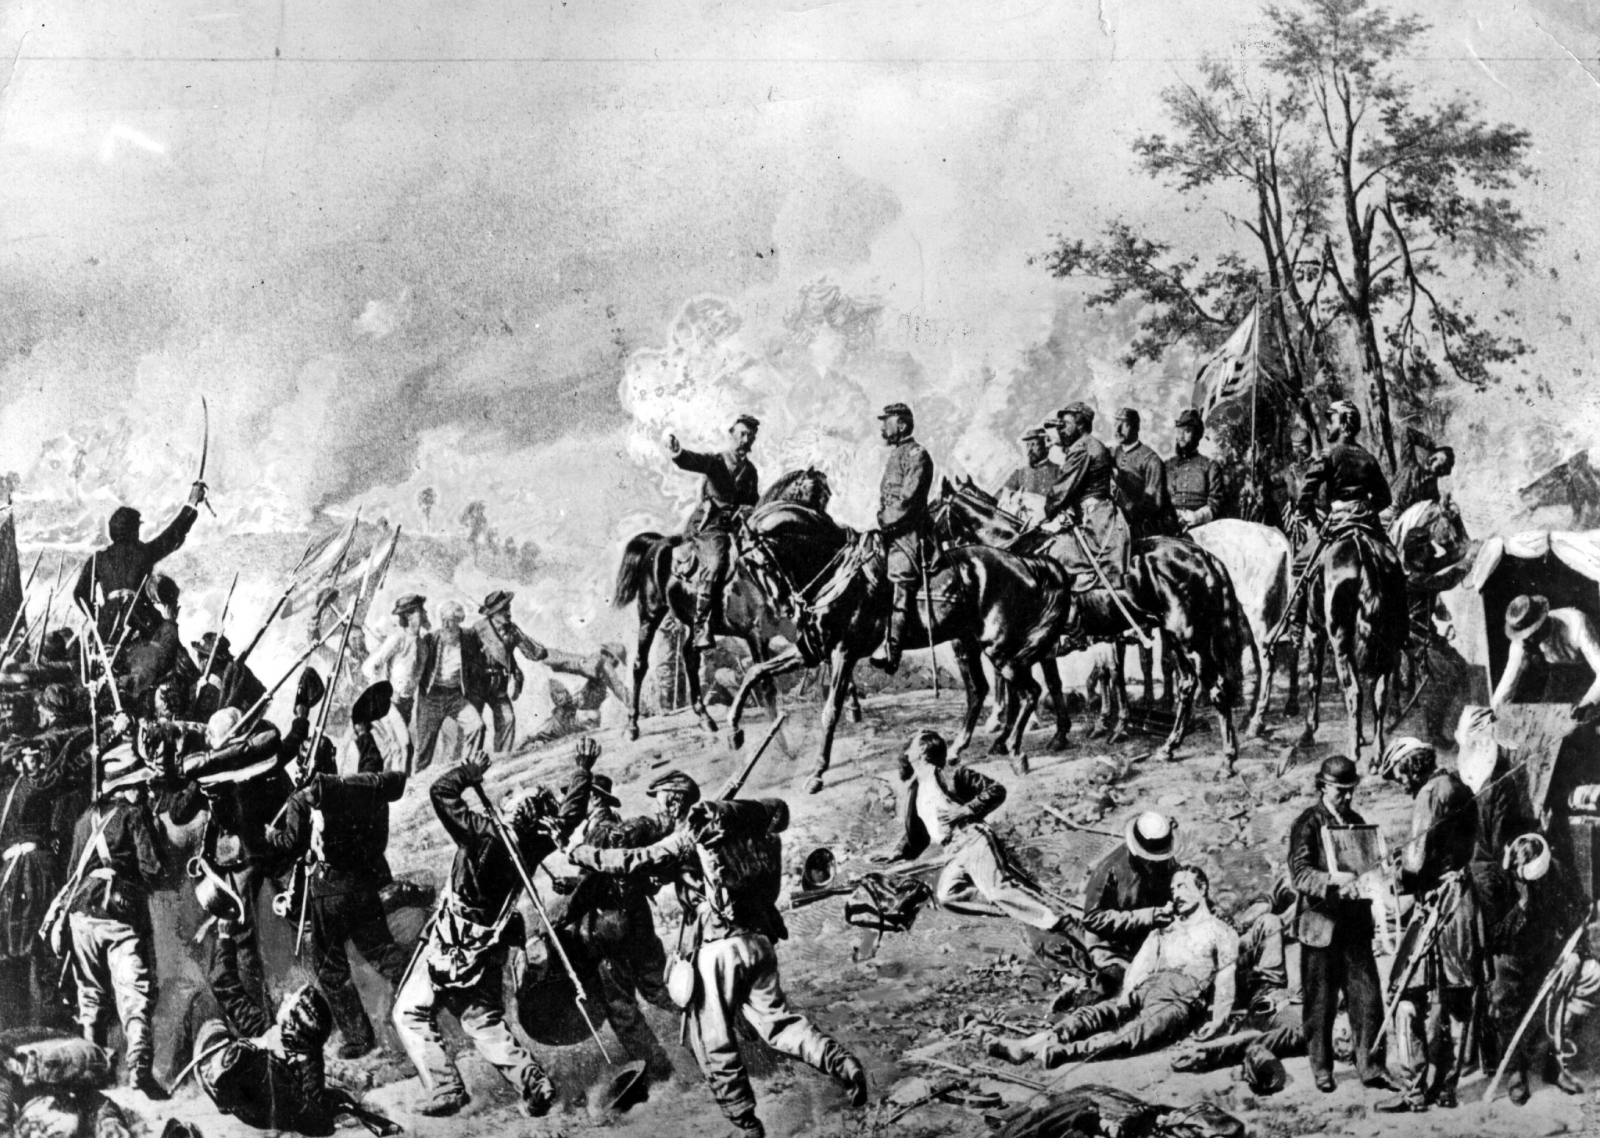 The Fall of Vicksburg: Turning Point of the Civil War